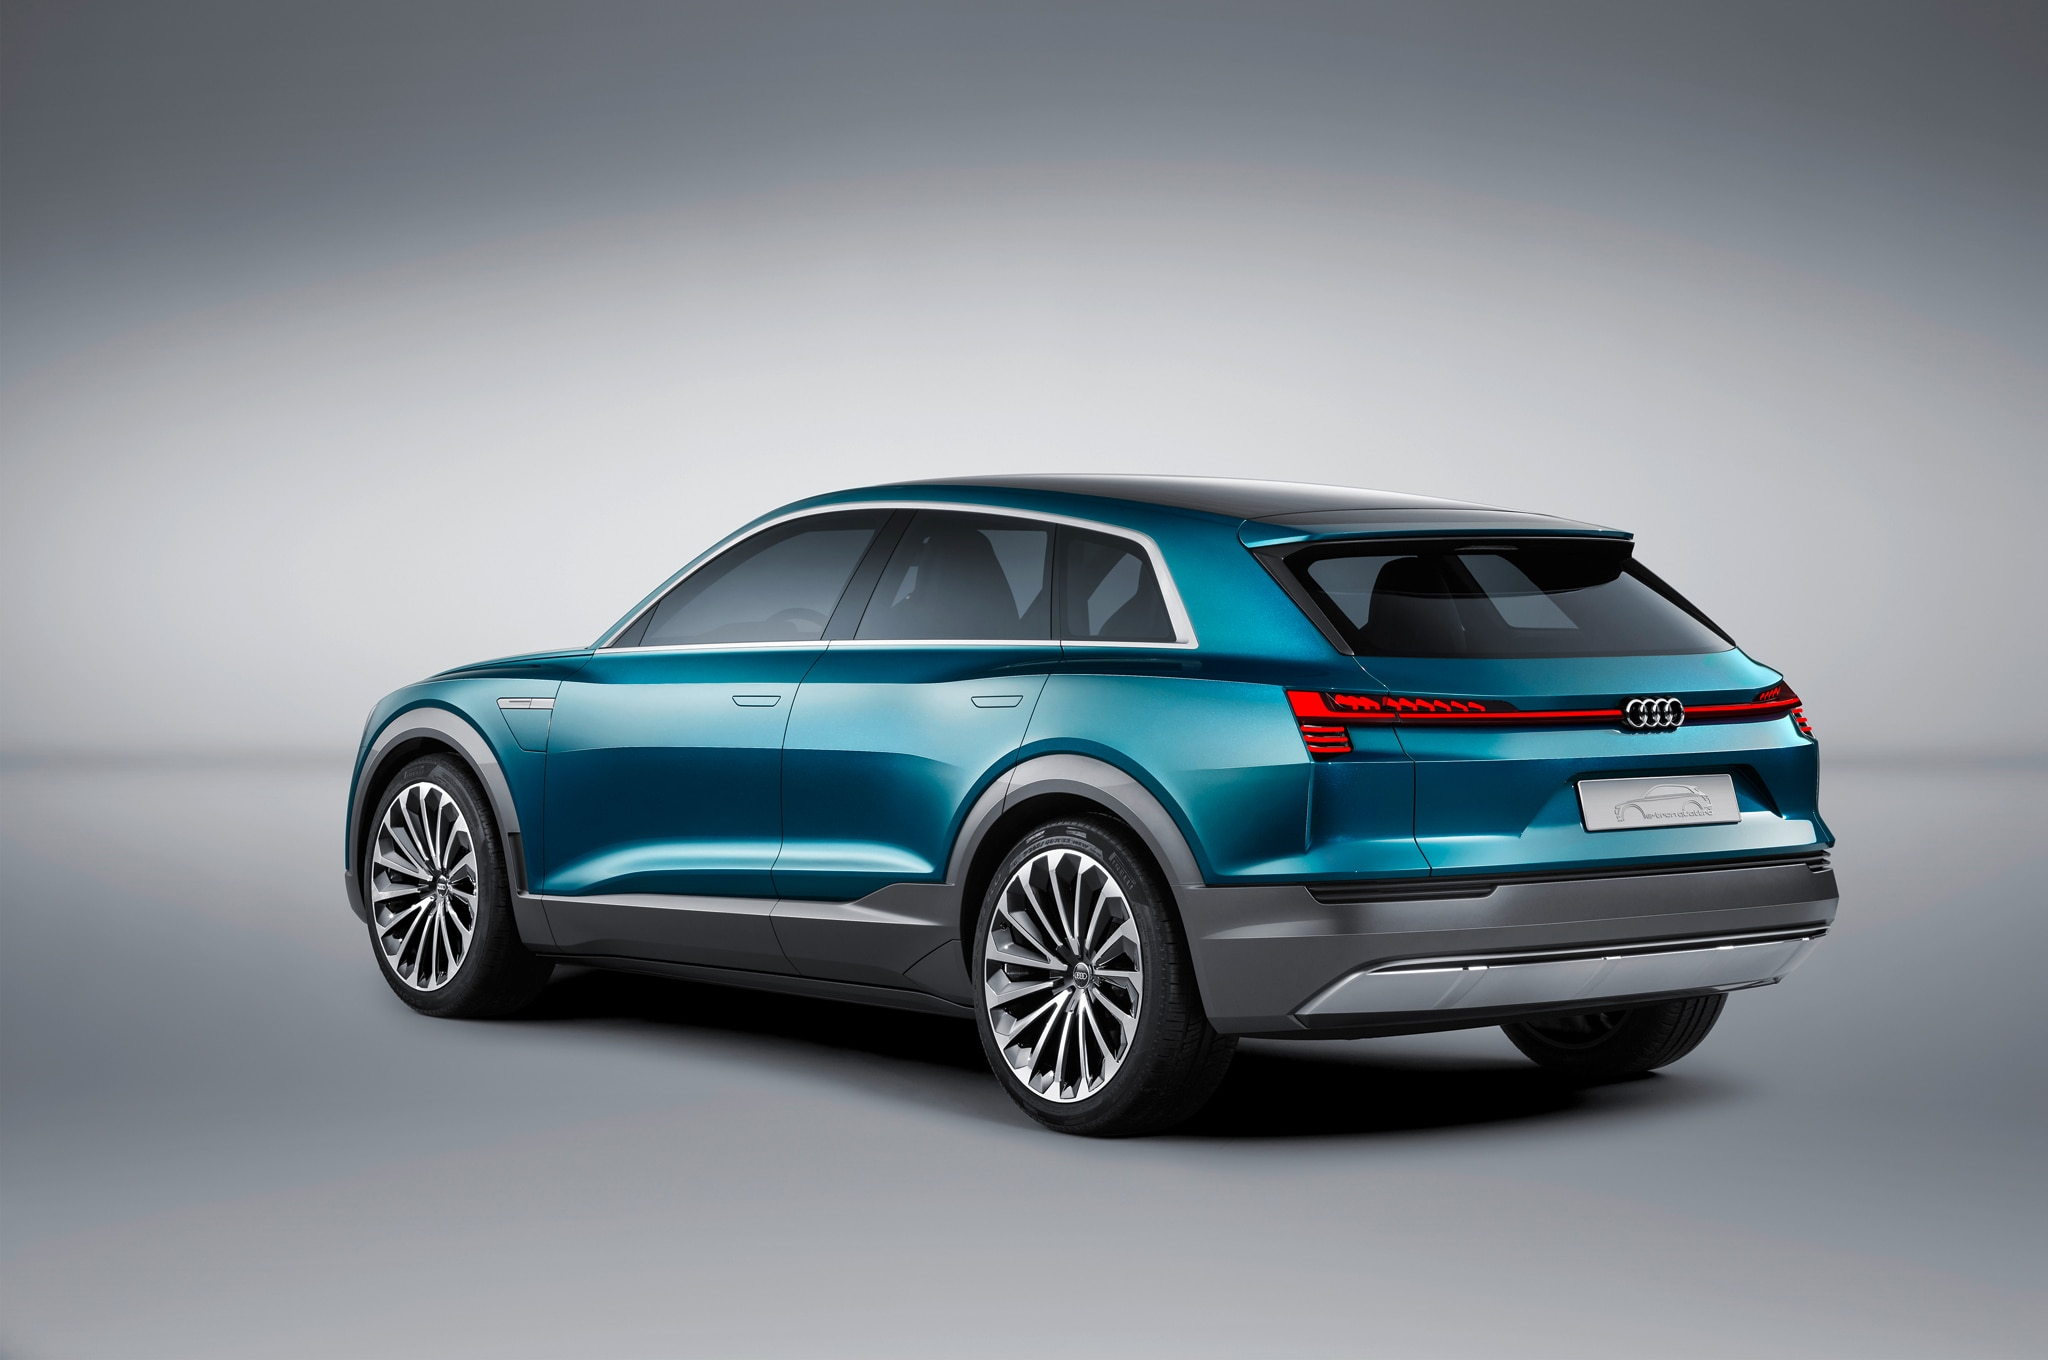 Merveilleux We Do Know That The New All Electric Audi SUV Will Ride On The Same MLB  Platform As The Audi Q7. As It Will Fit In Between The Q7 And Q5 In ...